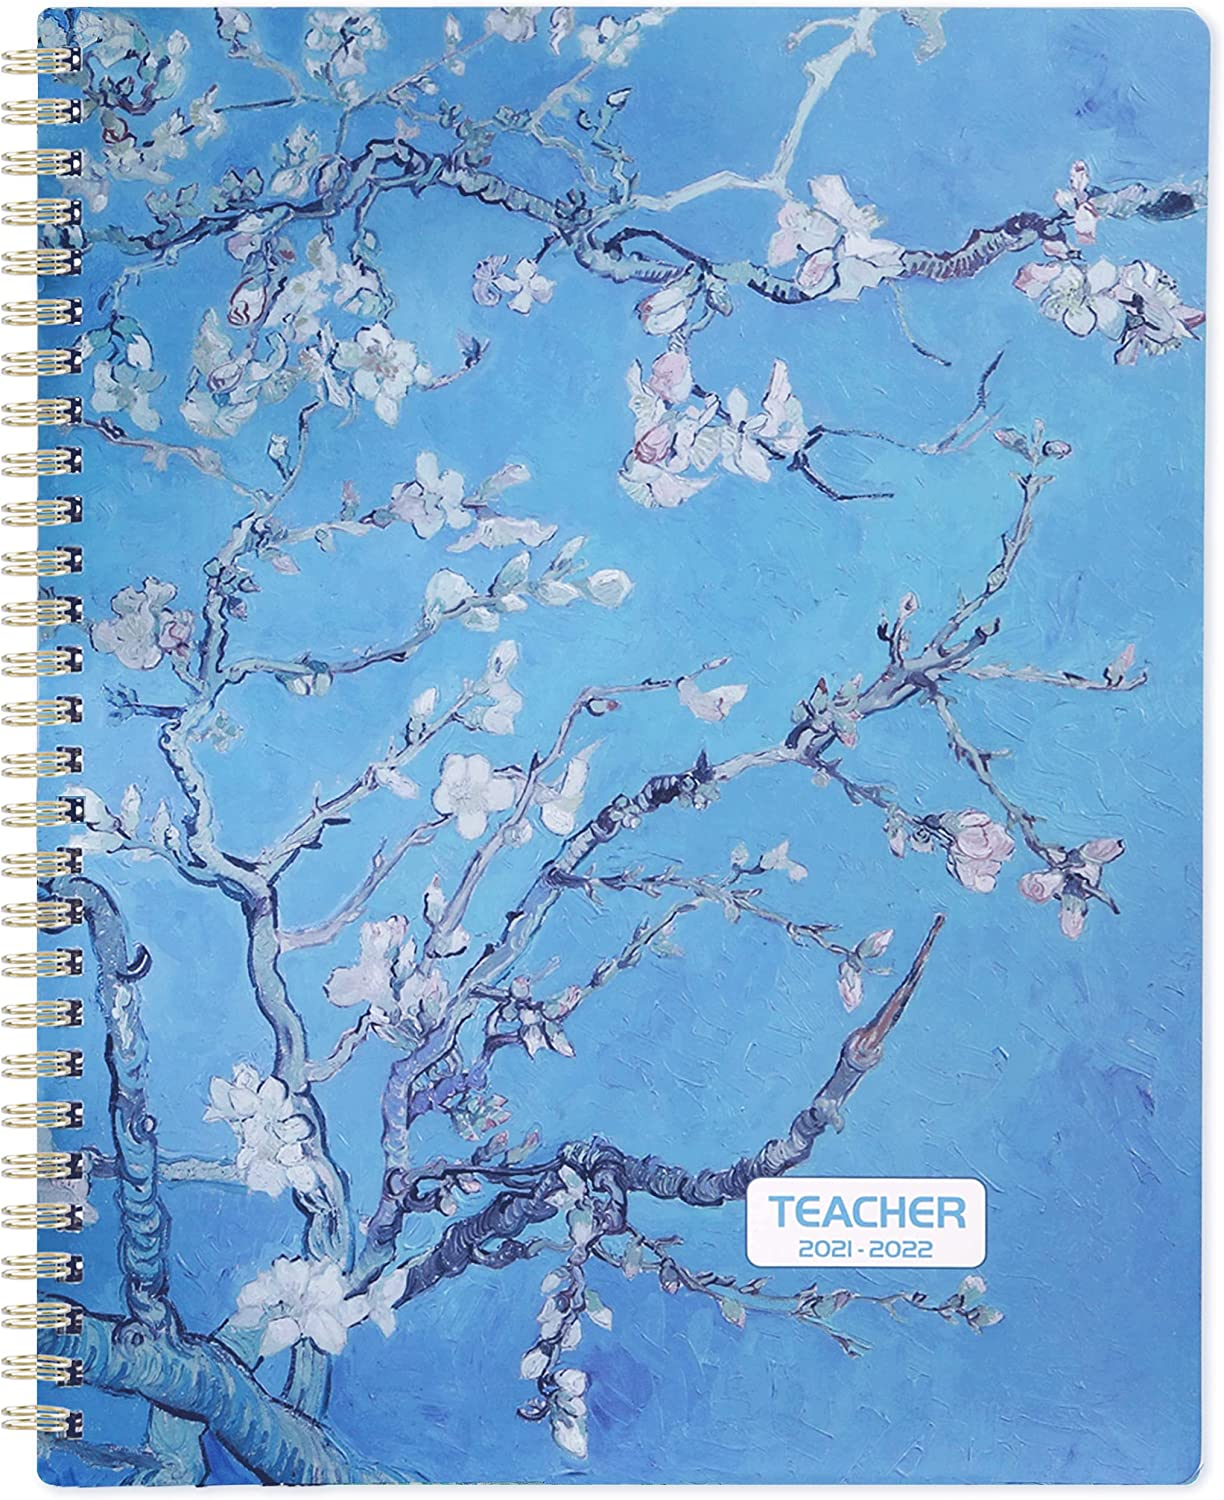 Teacher Planner 2021-2022 - Academic Lesson Planner from July 2021 - June 2022, 8'' x 10'', Lesson Plan Book, Weekly & Monthly Lesson Planner with Quotes : Office Products